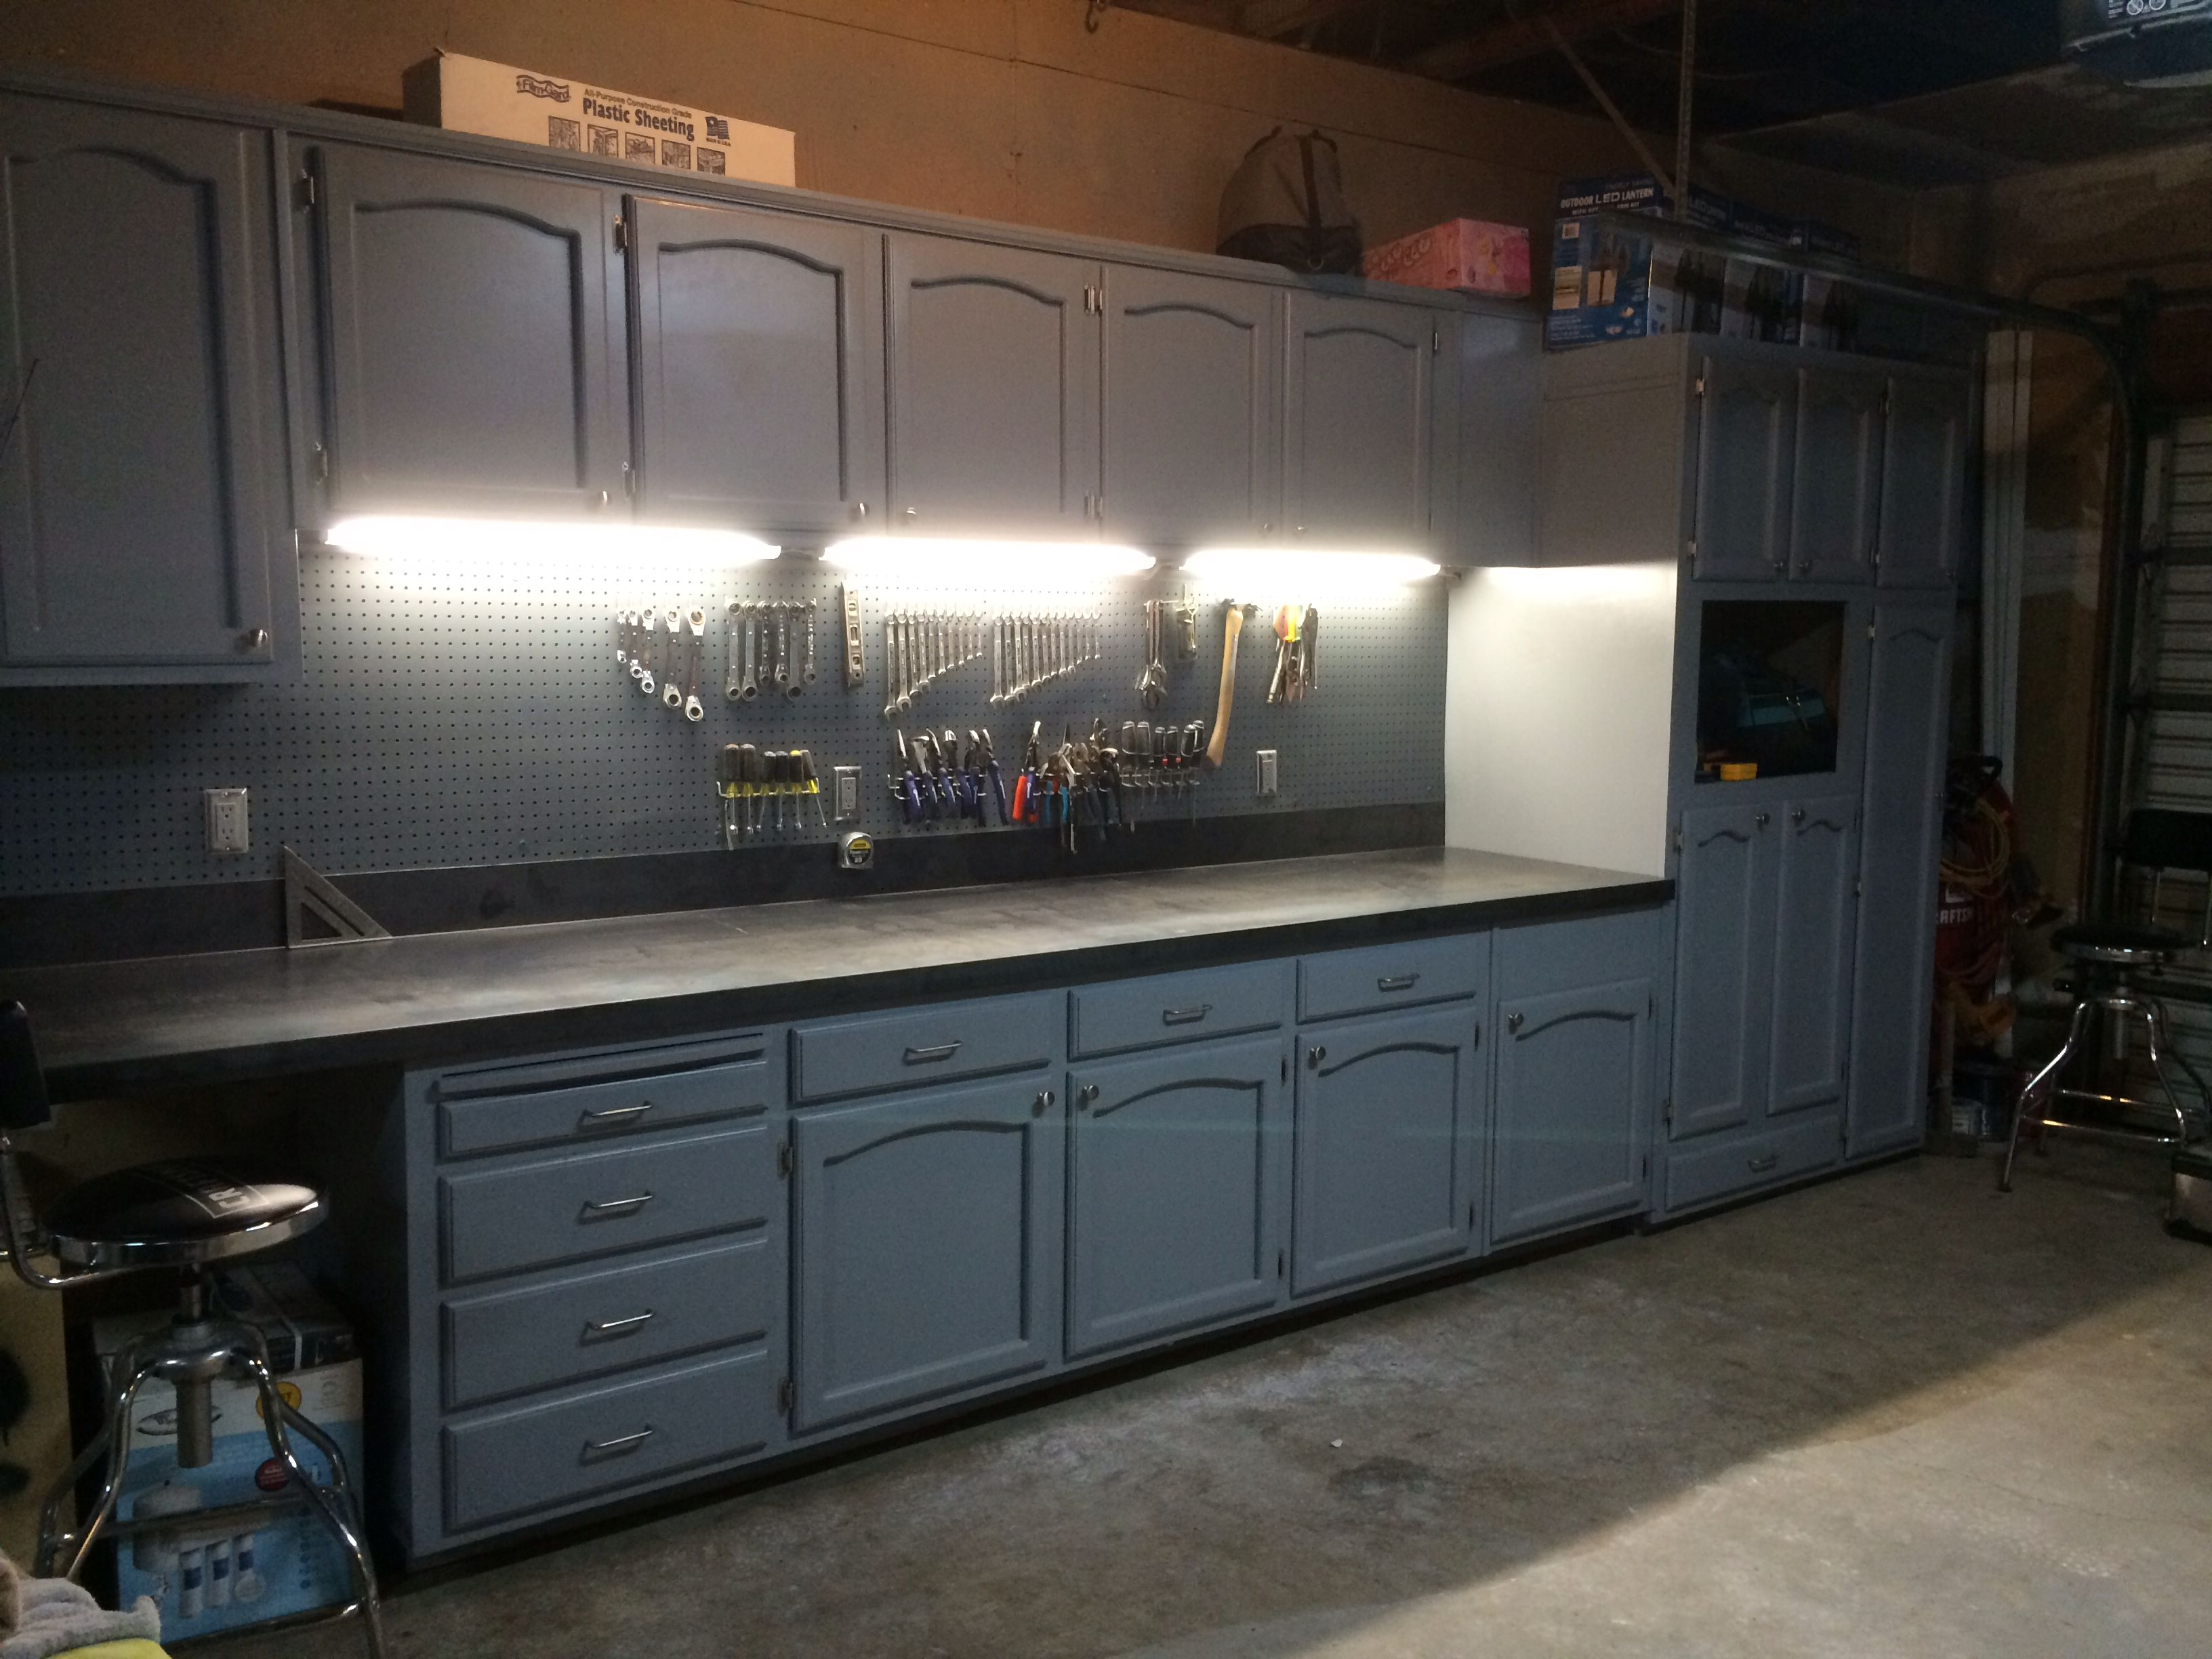 Kitchen Cabinets Appliance Garage Refurbished Kitchen Cabinets For The Ultimate Work Bench